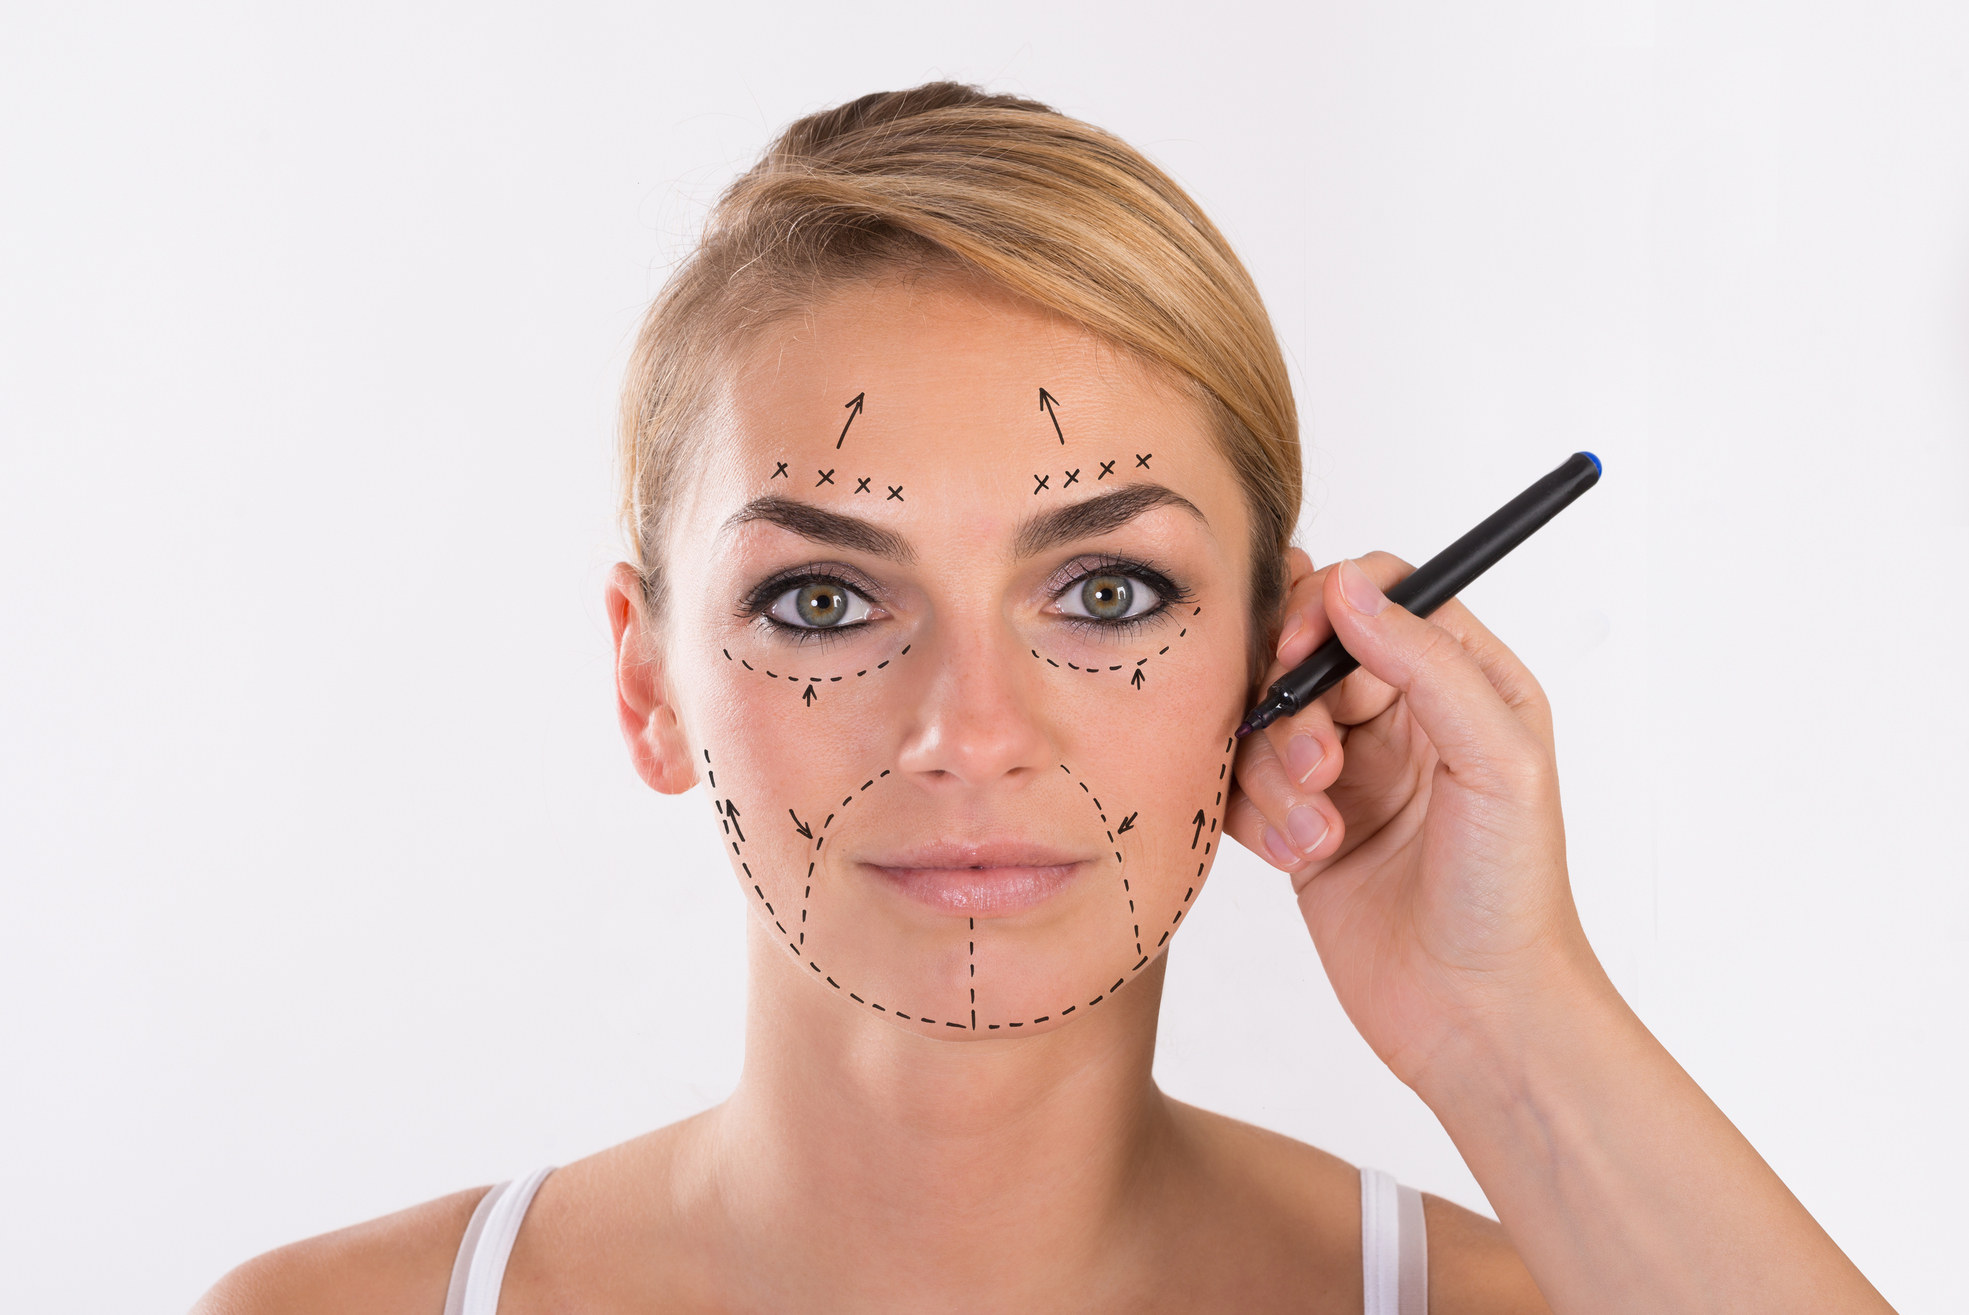 Facelift vs. Thread Lift: Which is Better?